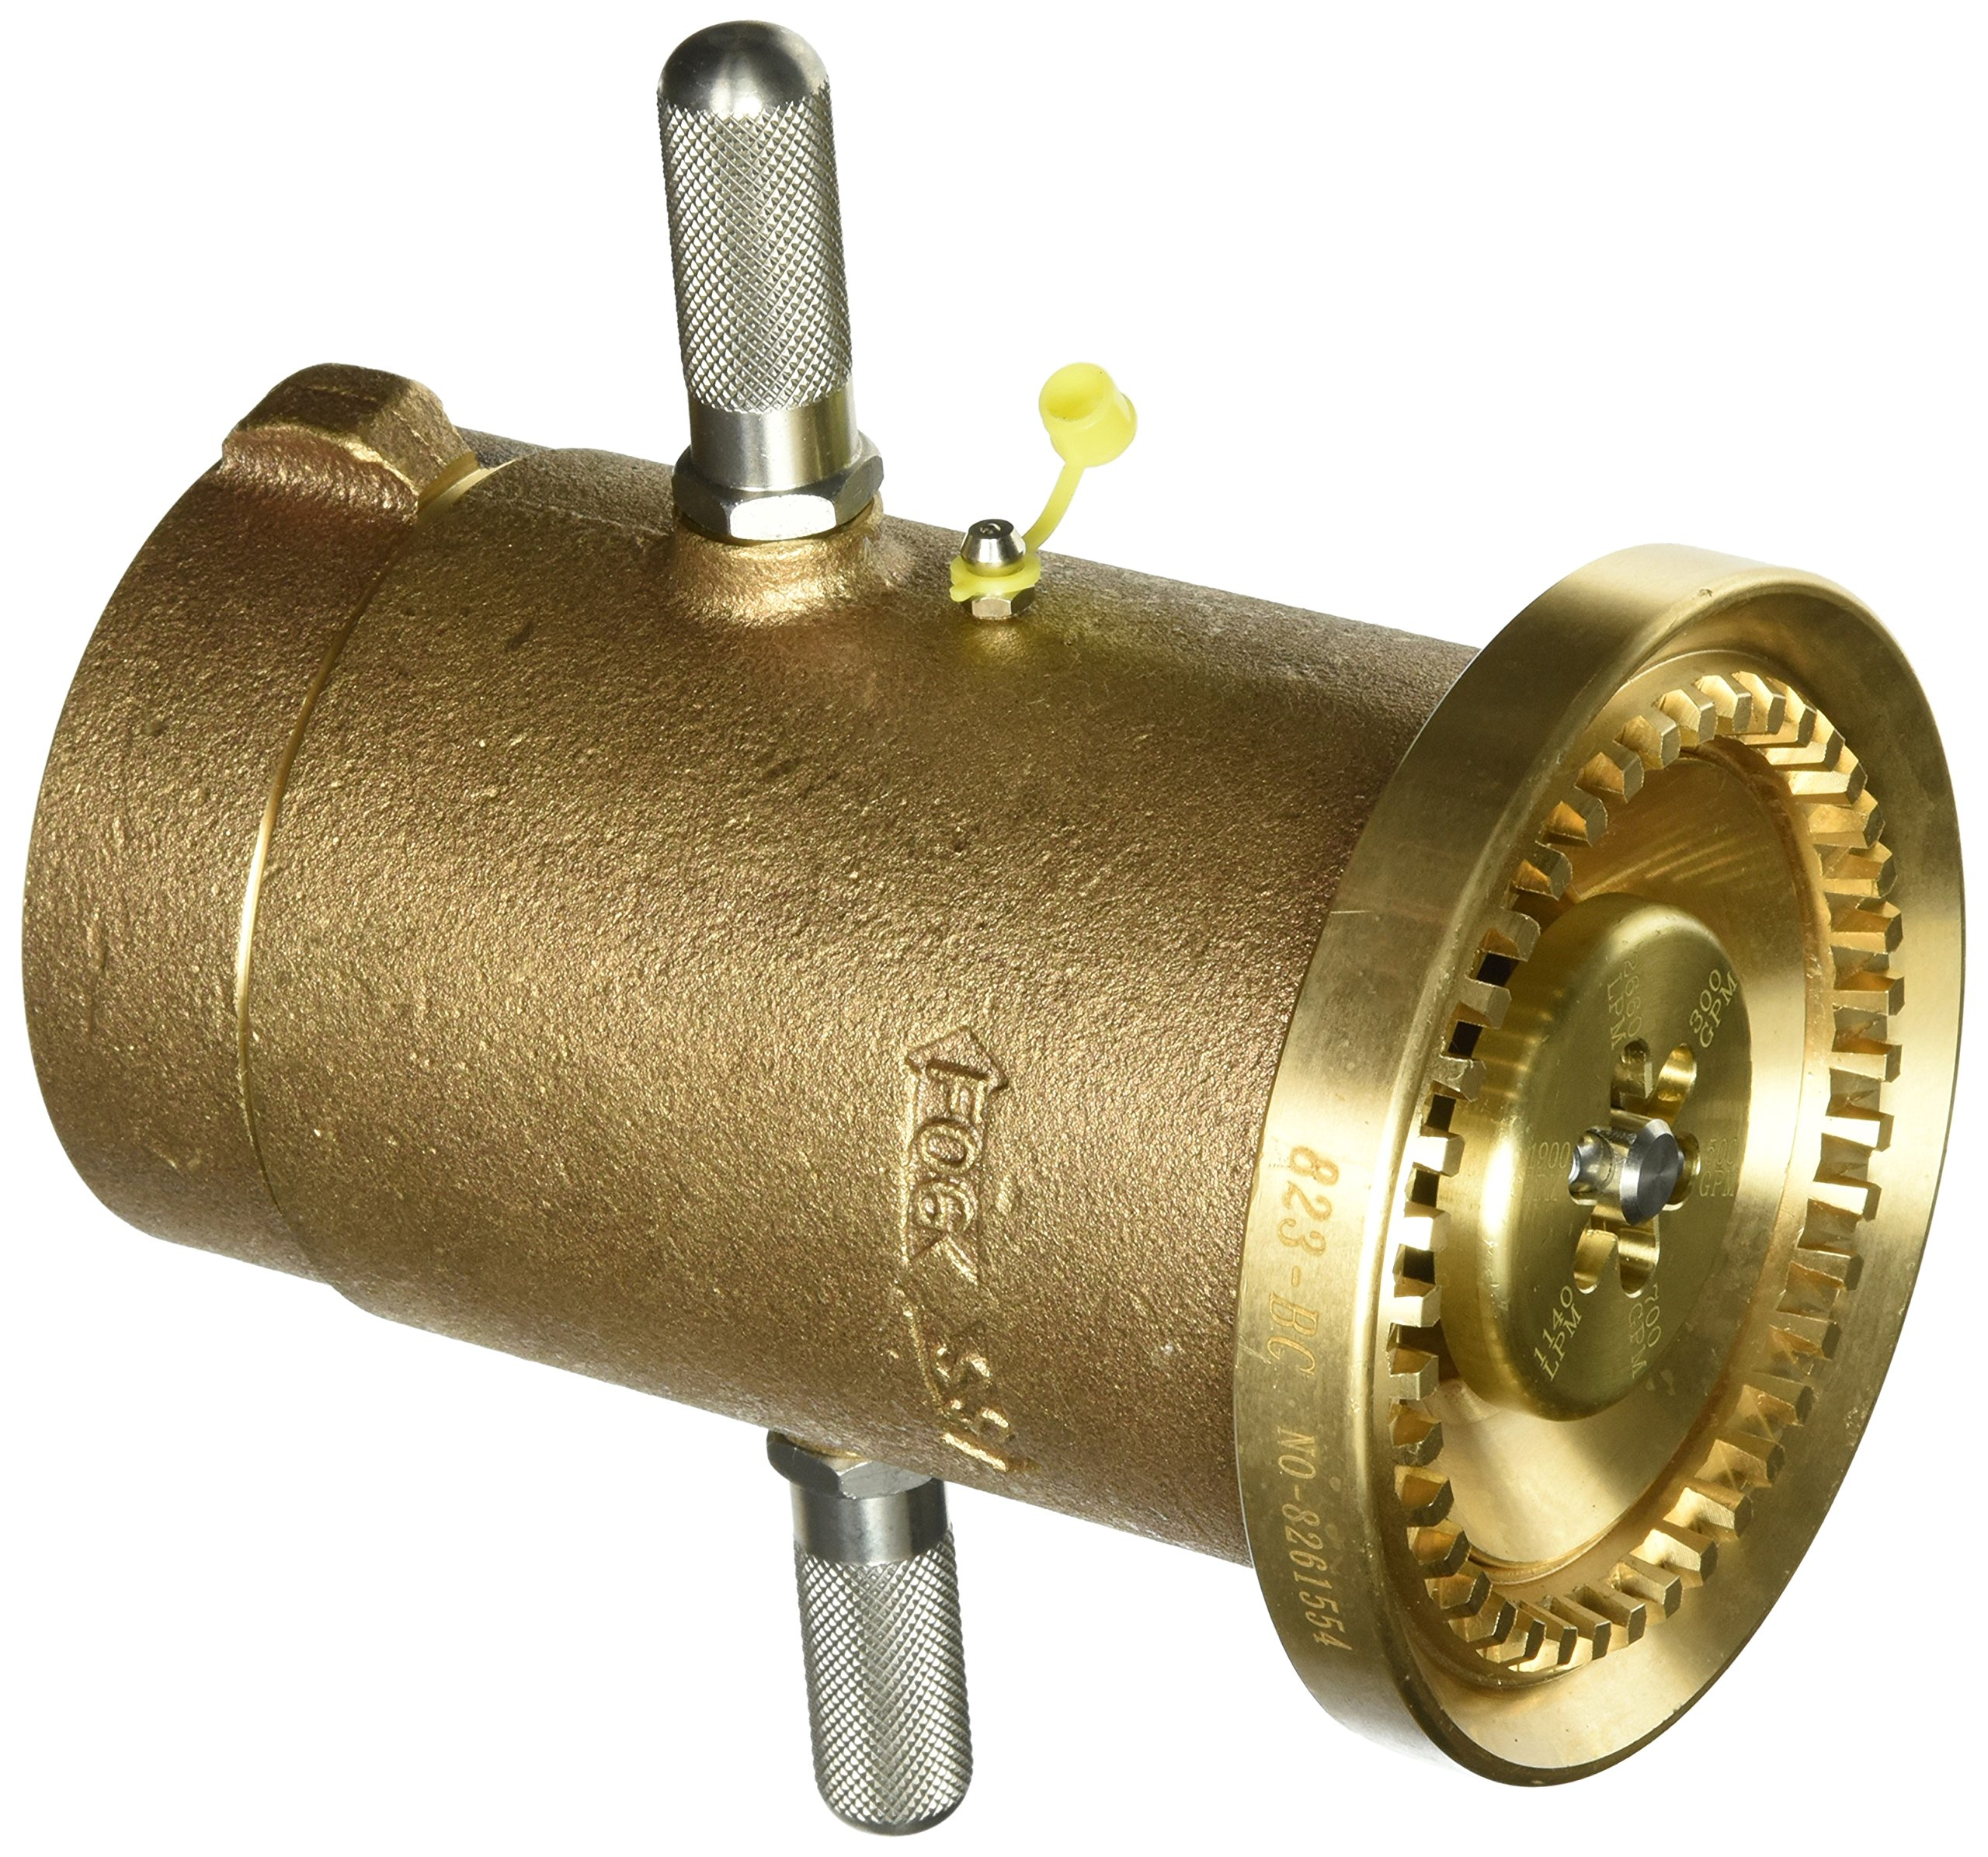 Moon 529-2522 Brass Fire Hose Nozzle, 700 gpm, 2-1/2'' NST